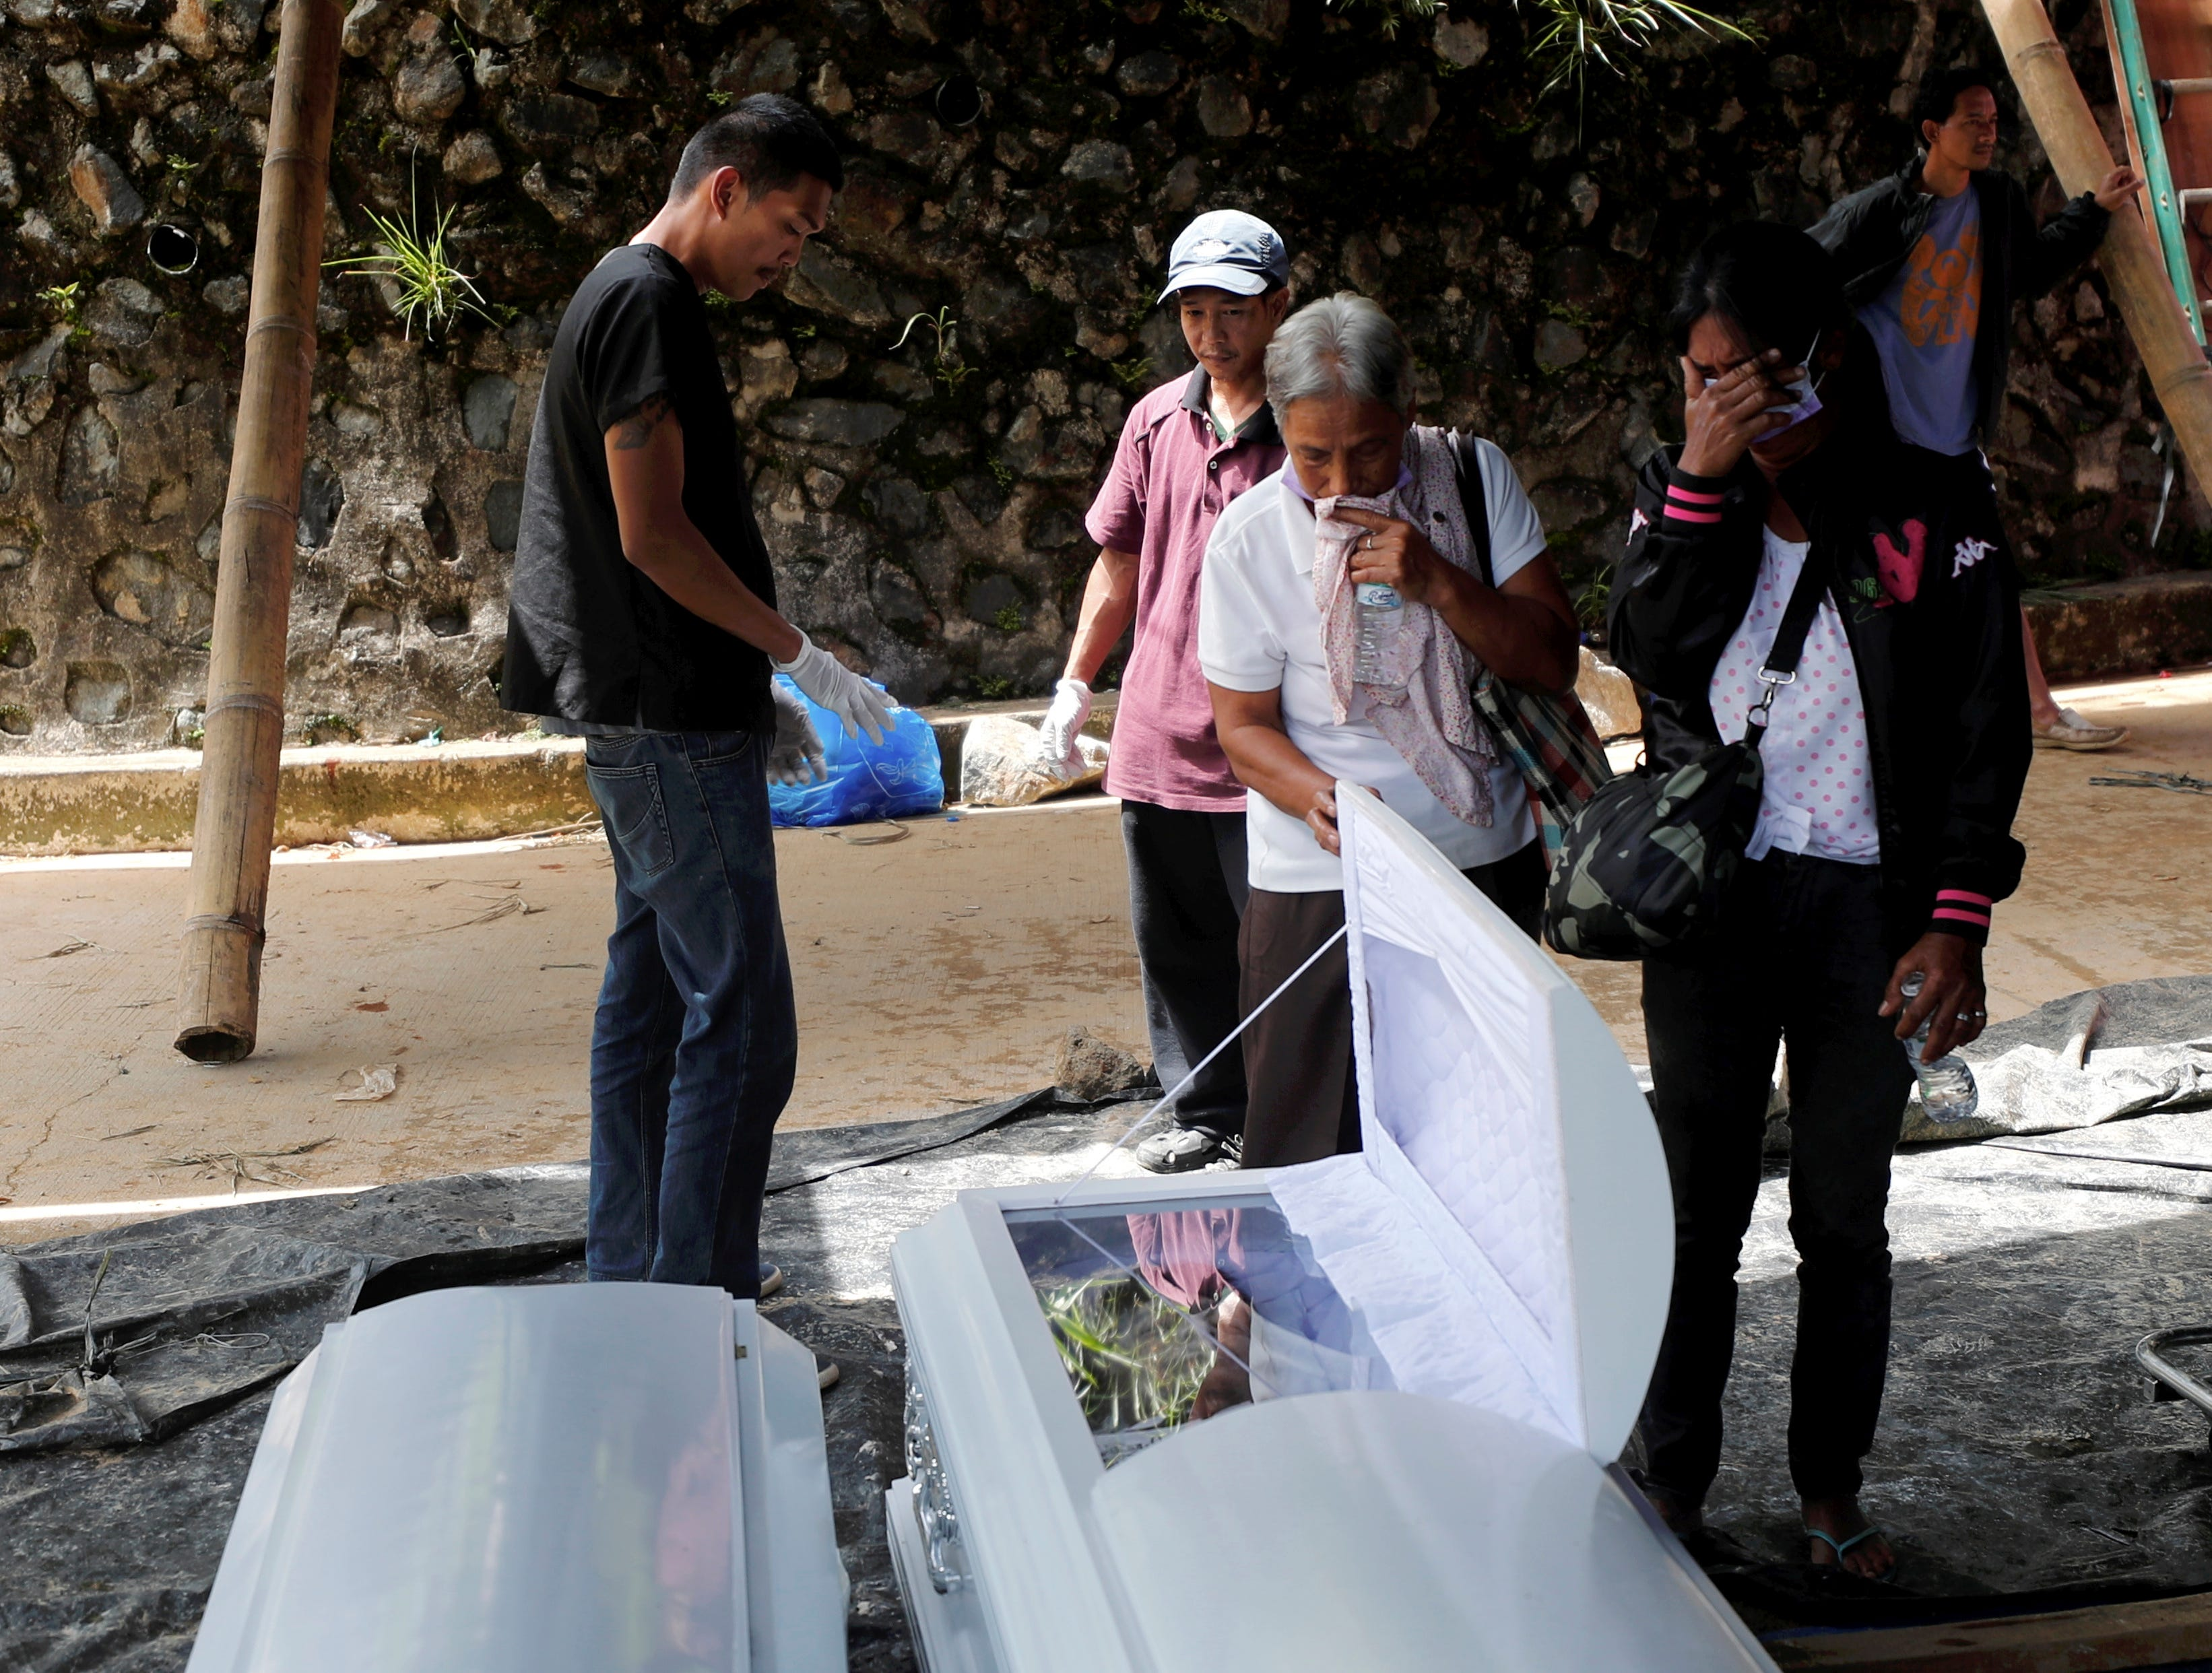 Filipino relatives of landslide victims cry in front of their coffins during rescue and retrieval operation for landslide victims caused by Typhoon Mangkhut in Ucab village, Itogon, Benguet Province, Philippines on Sept. 18, 2018.